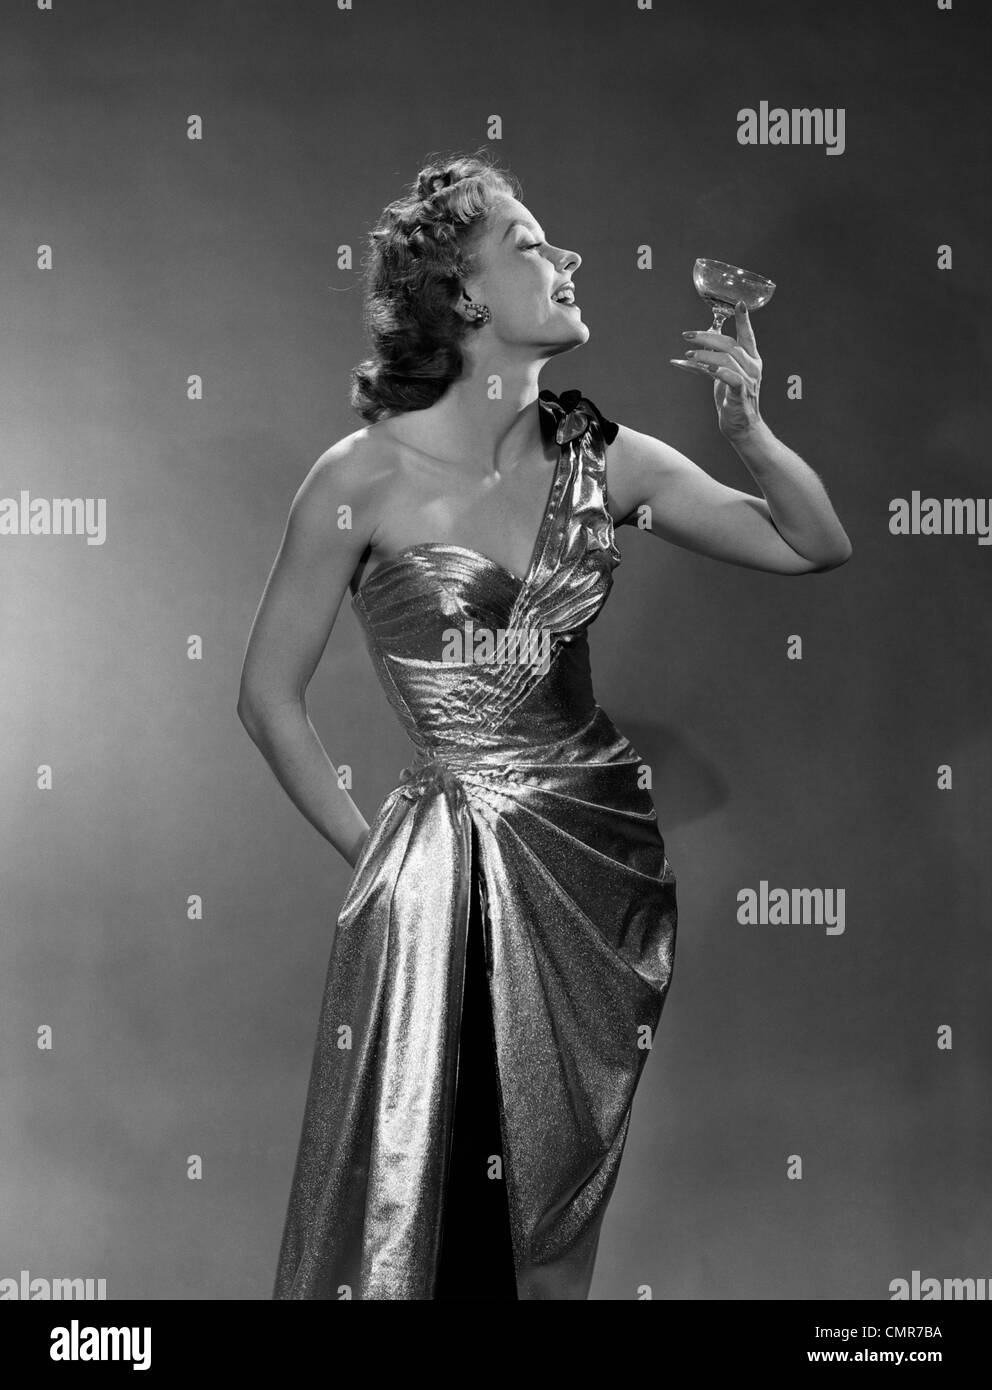 1950s WOMAN WEARING METALLIC EVENING GOWN HOLDING UP WINE GLASS PROFILE INDOOR - Stock Image